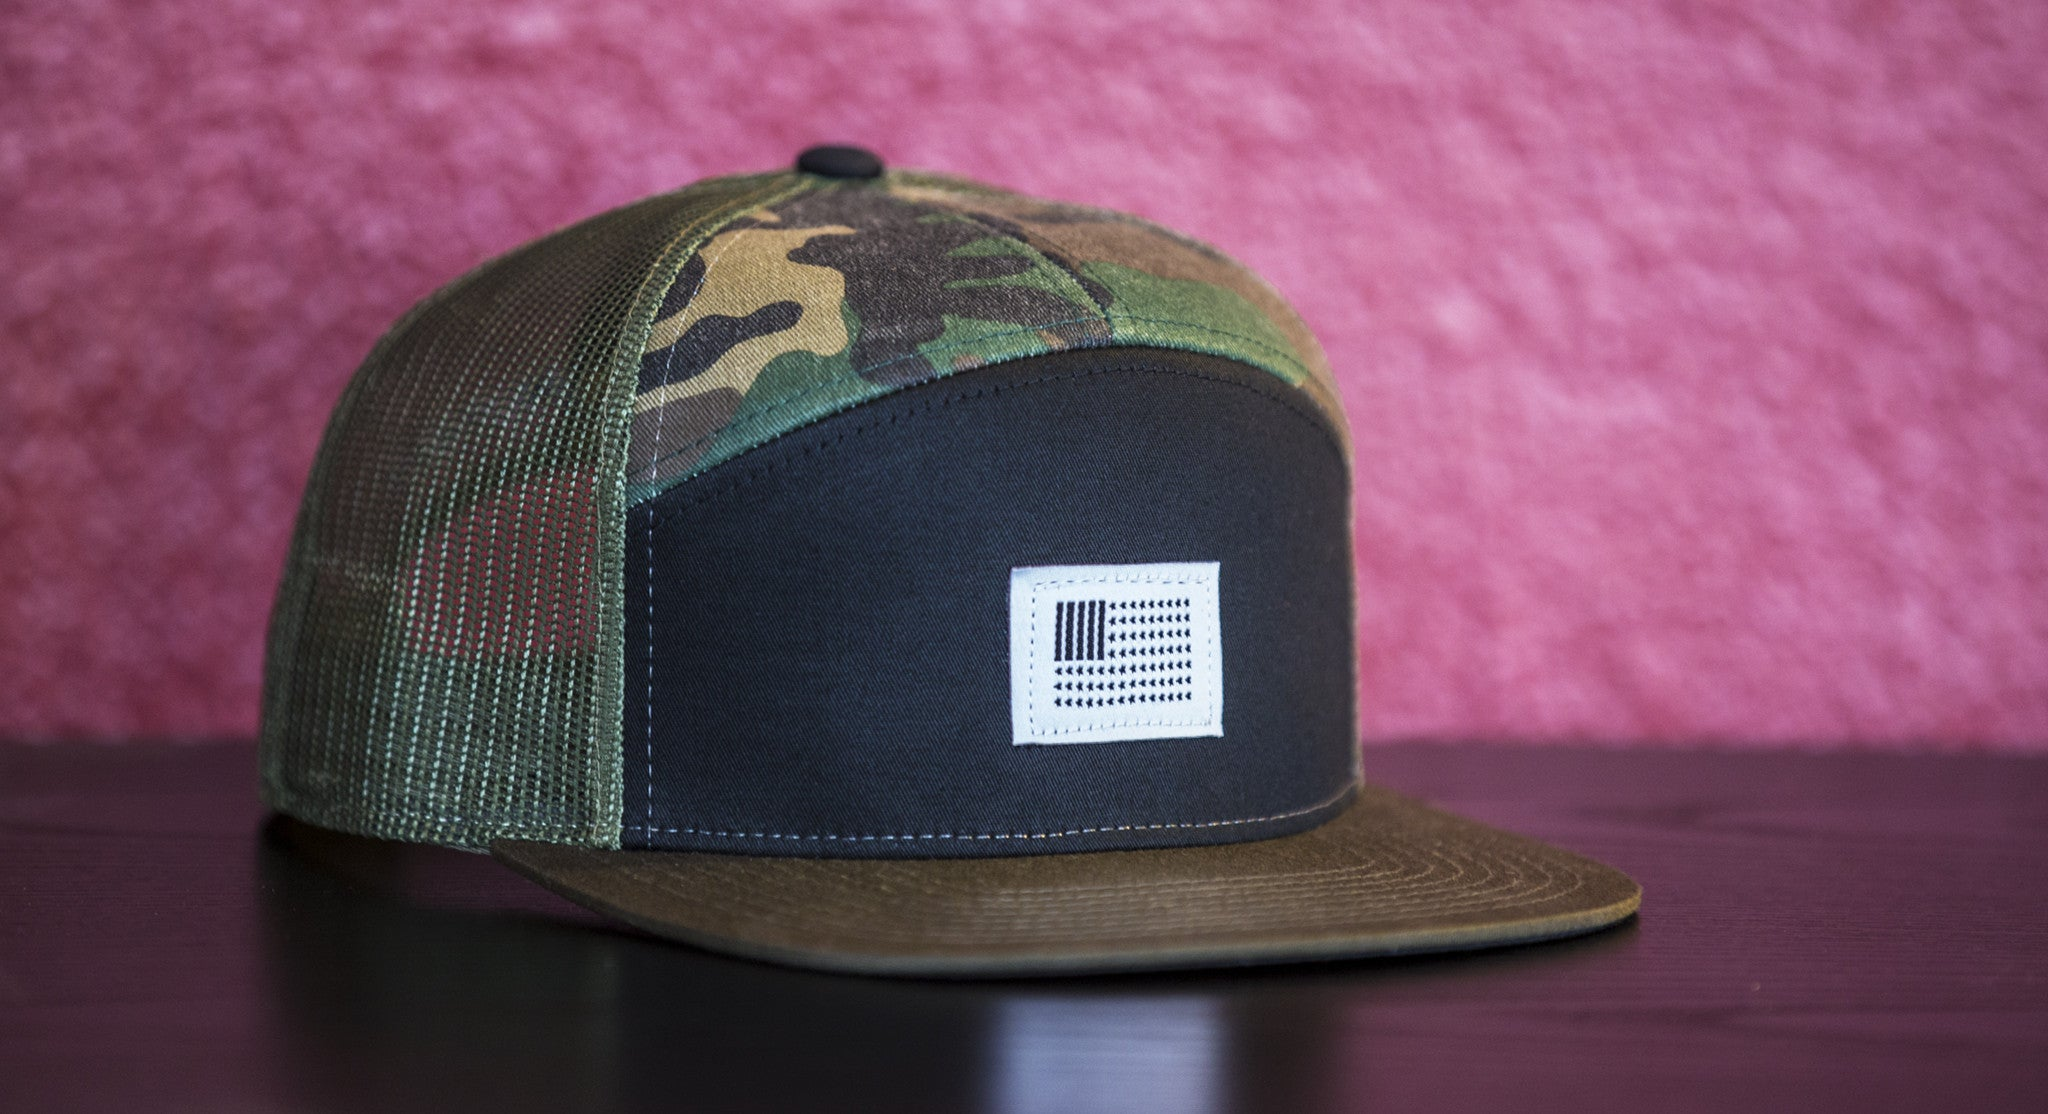 BARS & STARS 7 PANEL TRUCKER // CAMO & BLACK | SNAPBACK